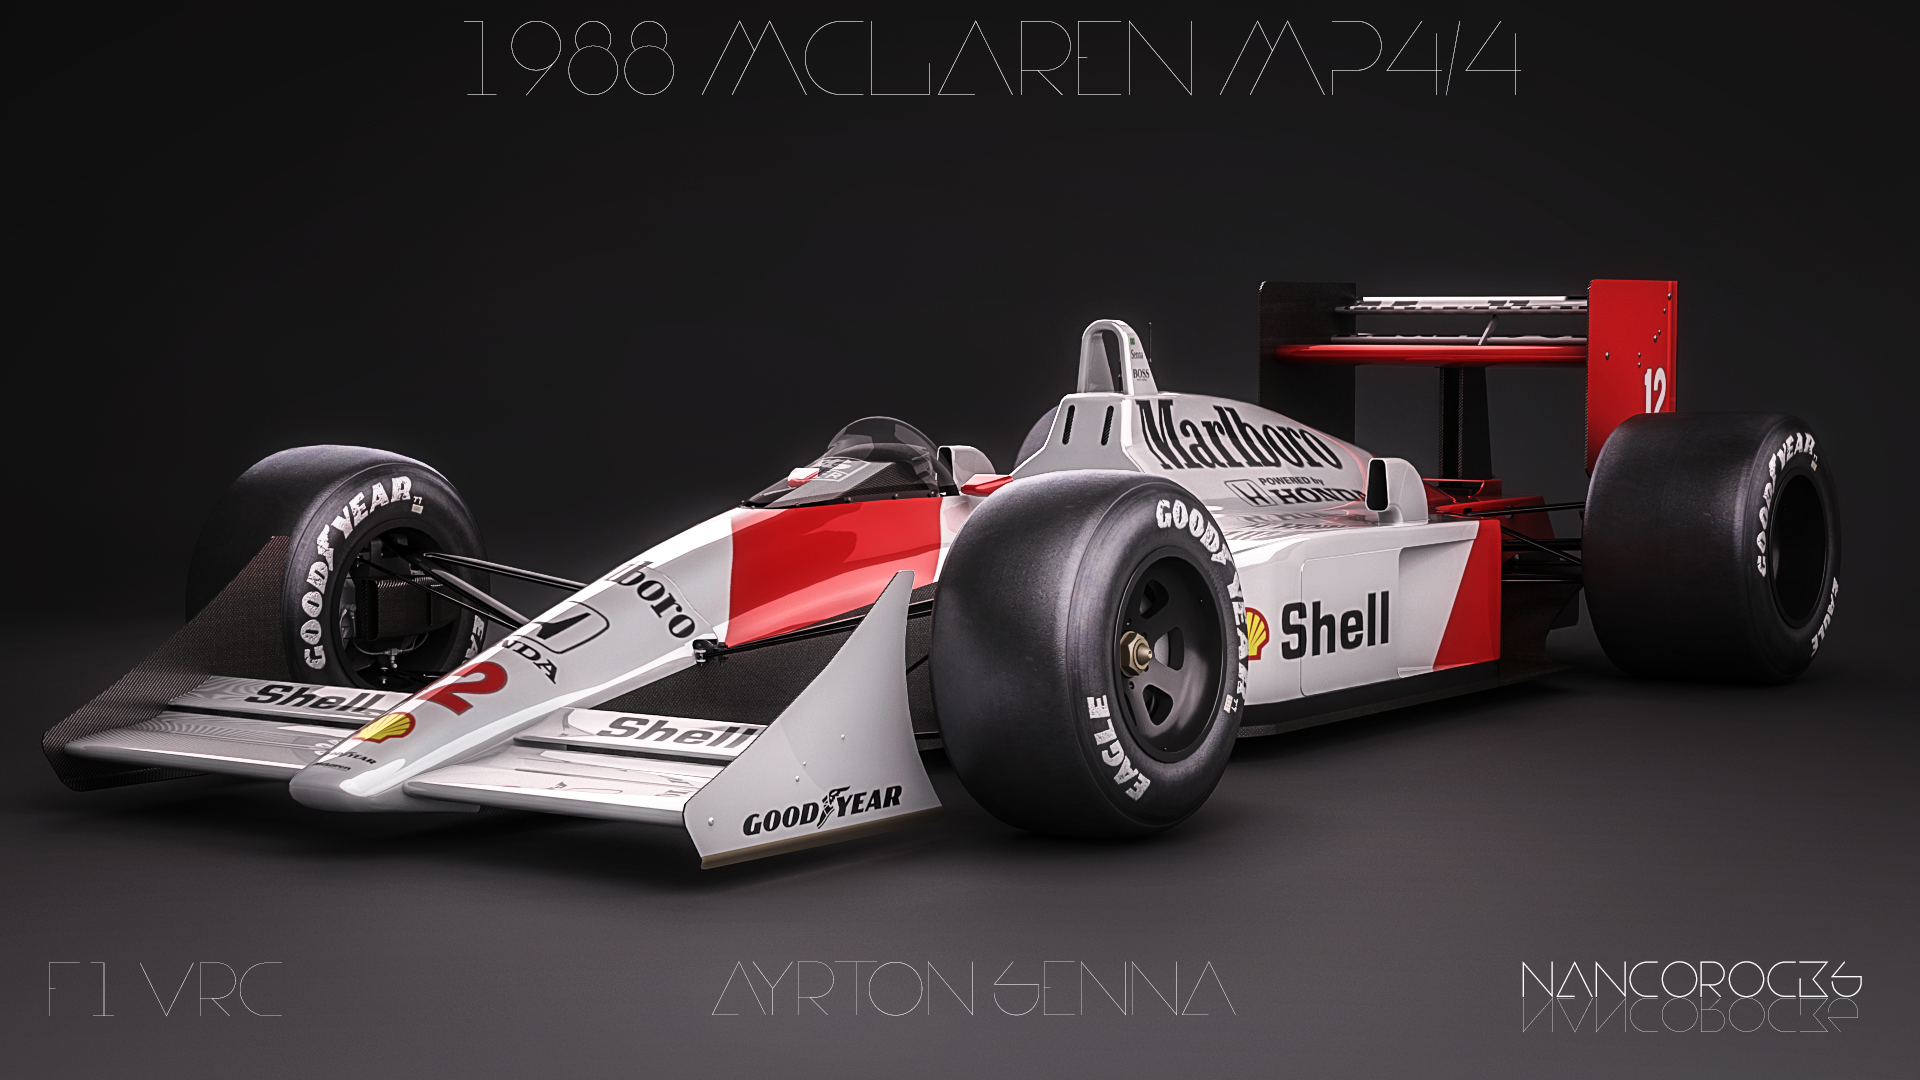 1988 Mclaren Mp4 4 Ayrton Senna By Nancorocks On